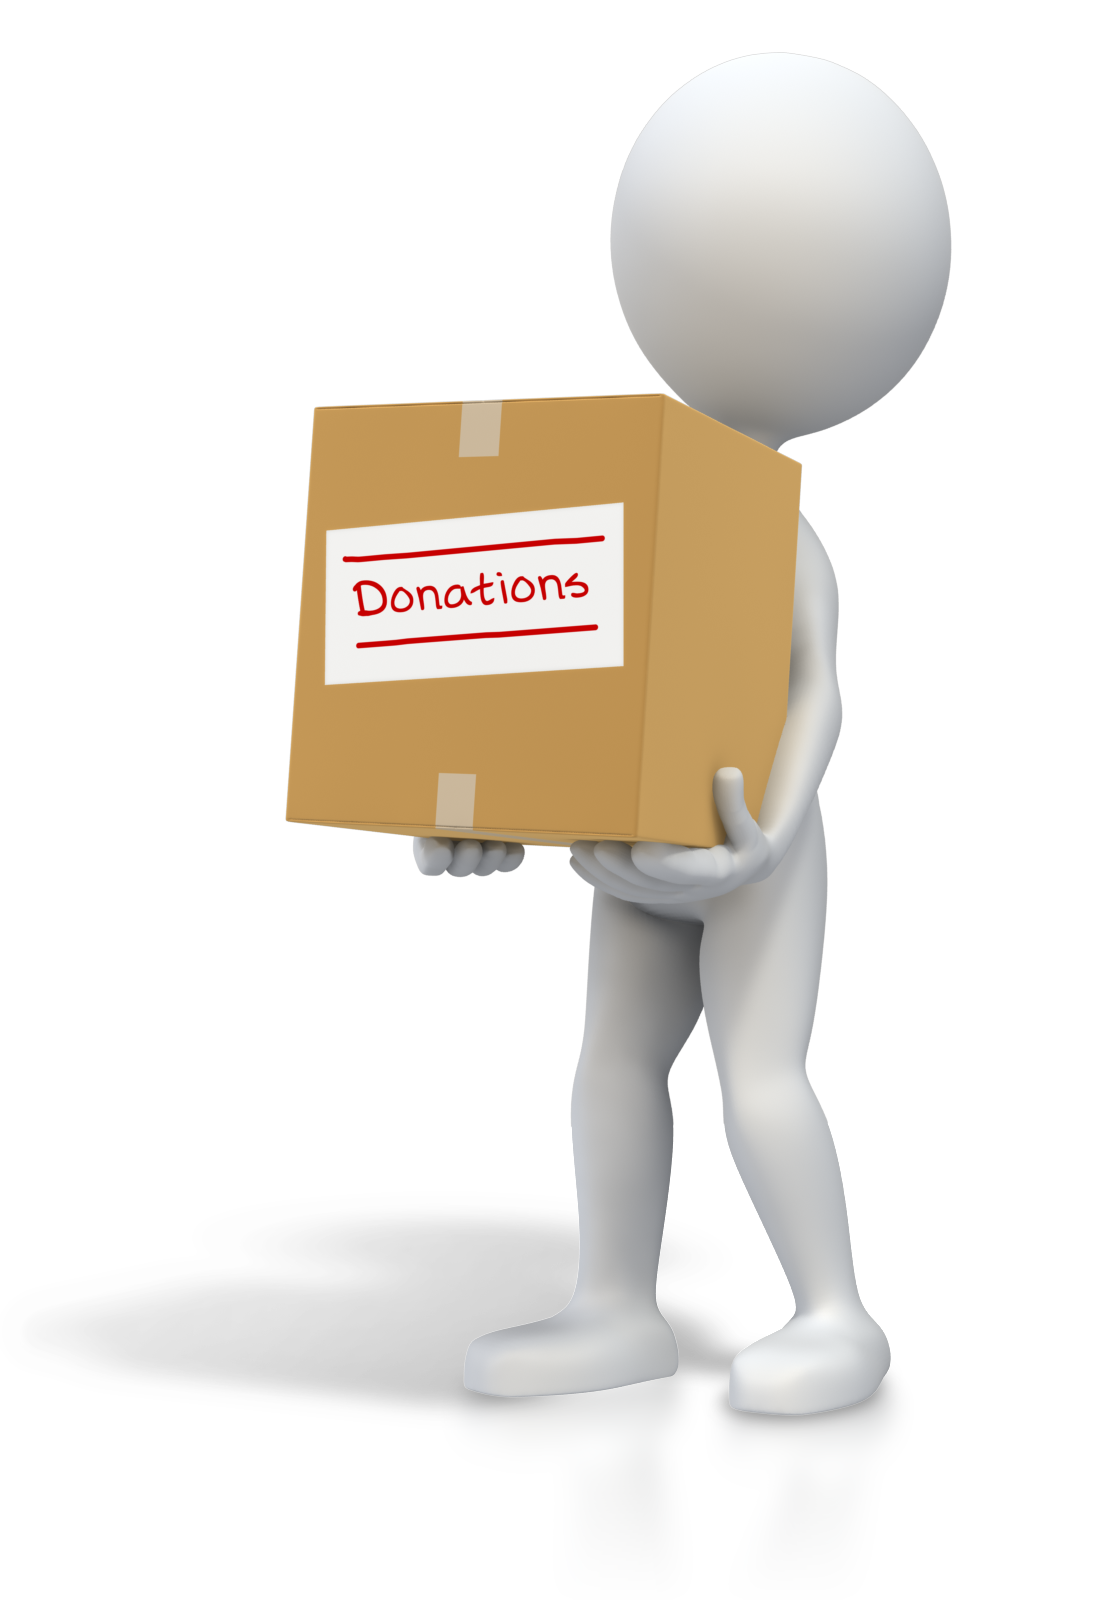 stick_figure_carrying_donations_box_1600_clr_5542